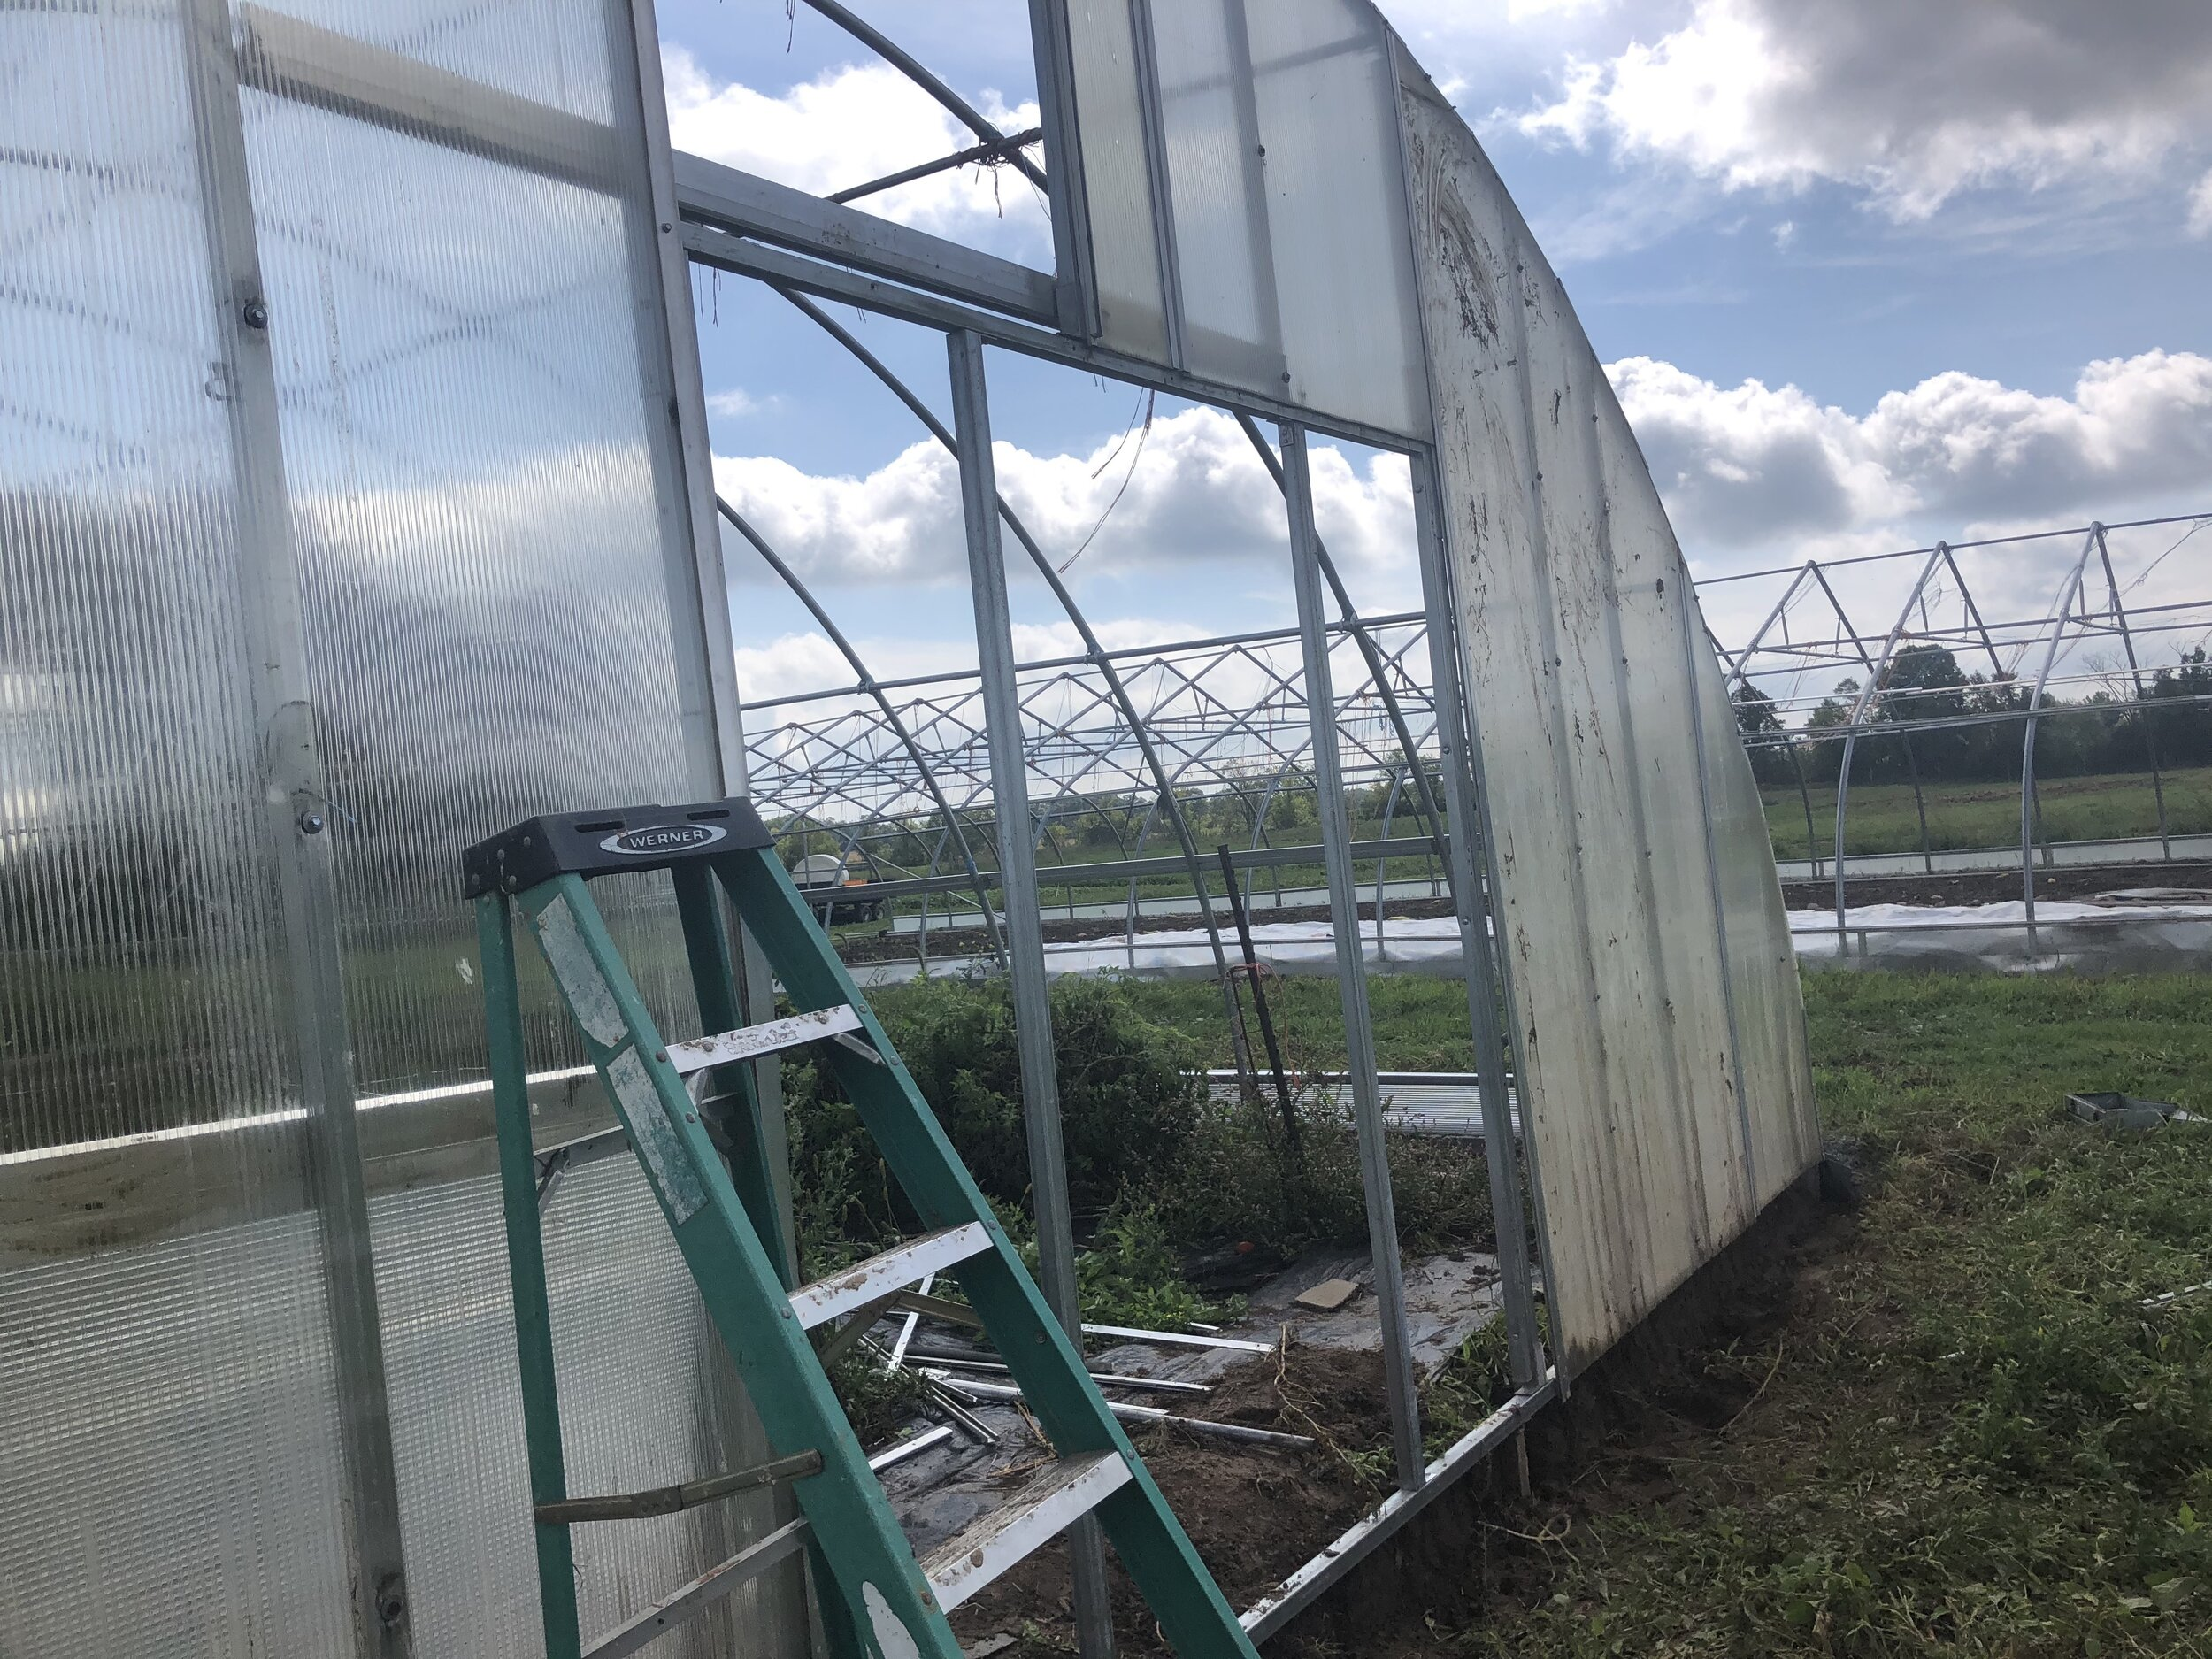 Hoophouse upgrades. Getting back to this project to get it finished up soon!  It will help us extend our tomato season and have more favorites in our early season and late season boxes.